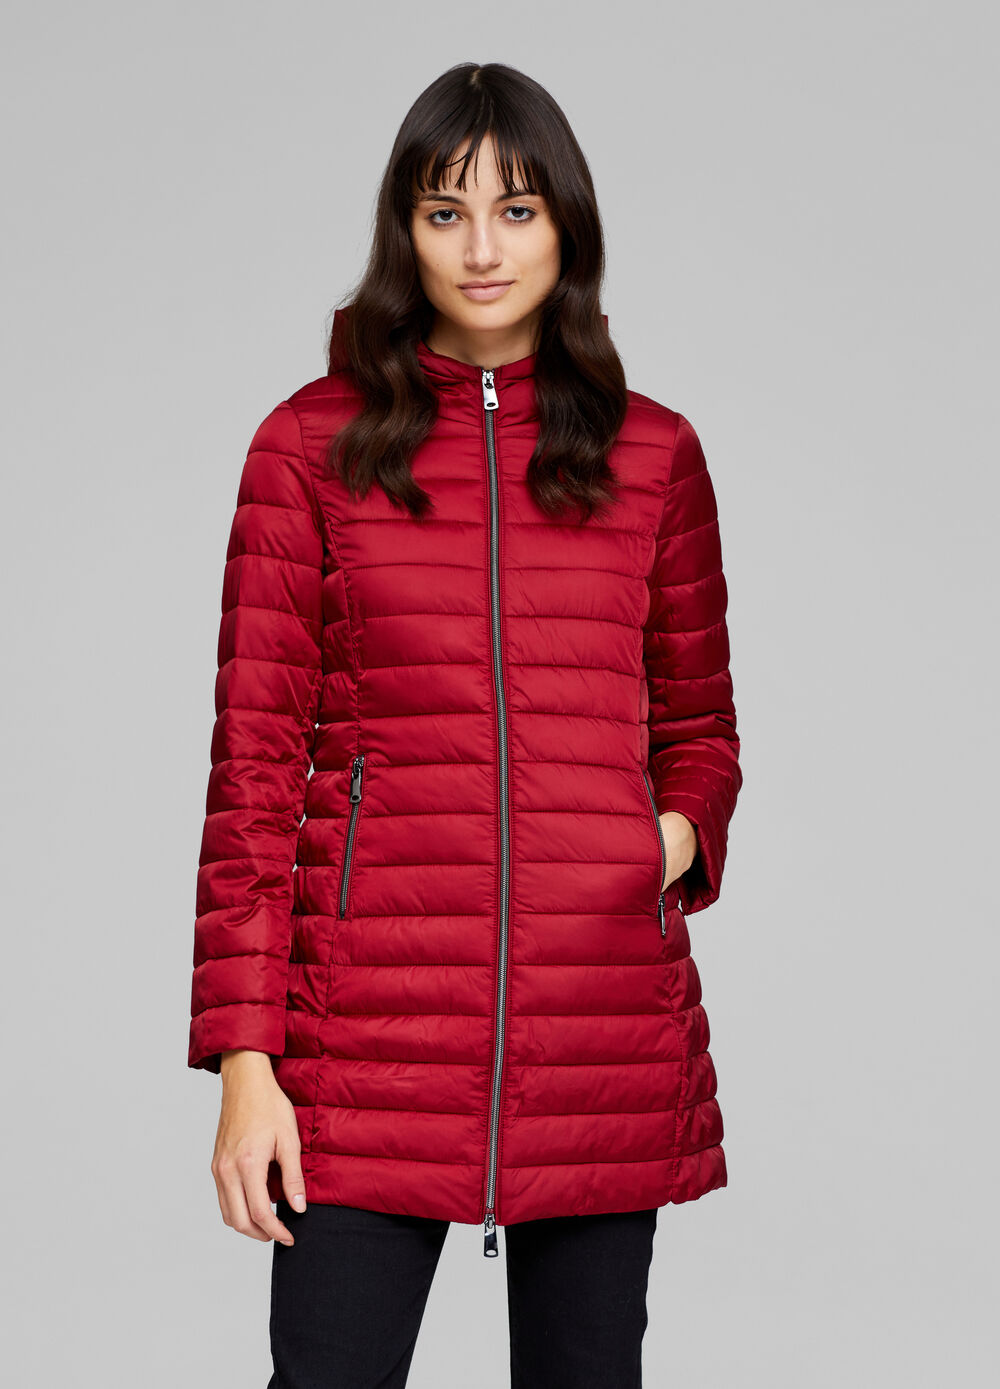 Long solid colour jacket with stitching